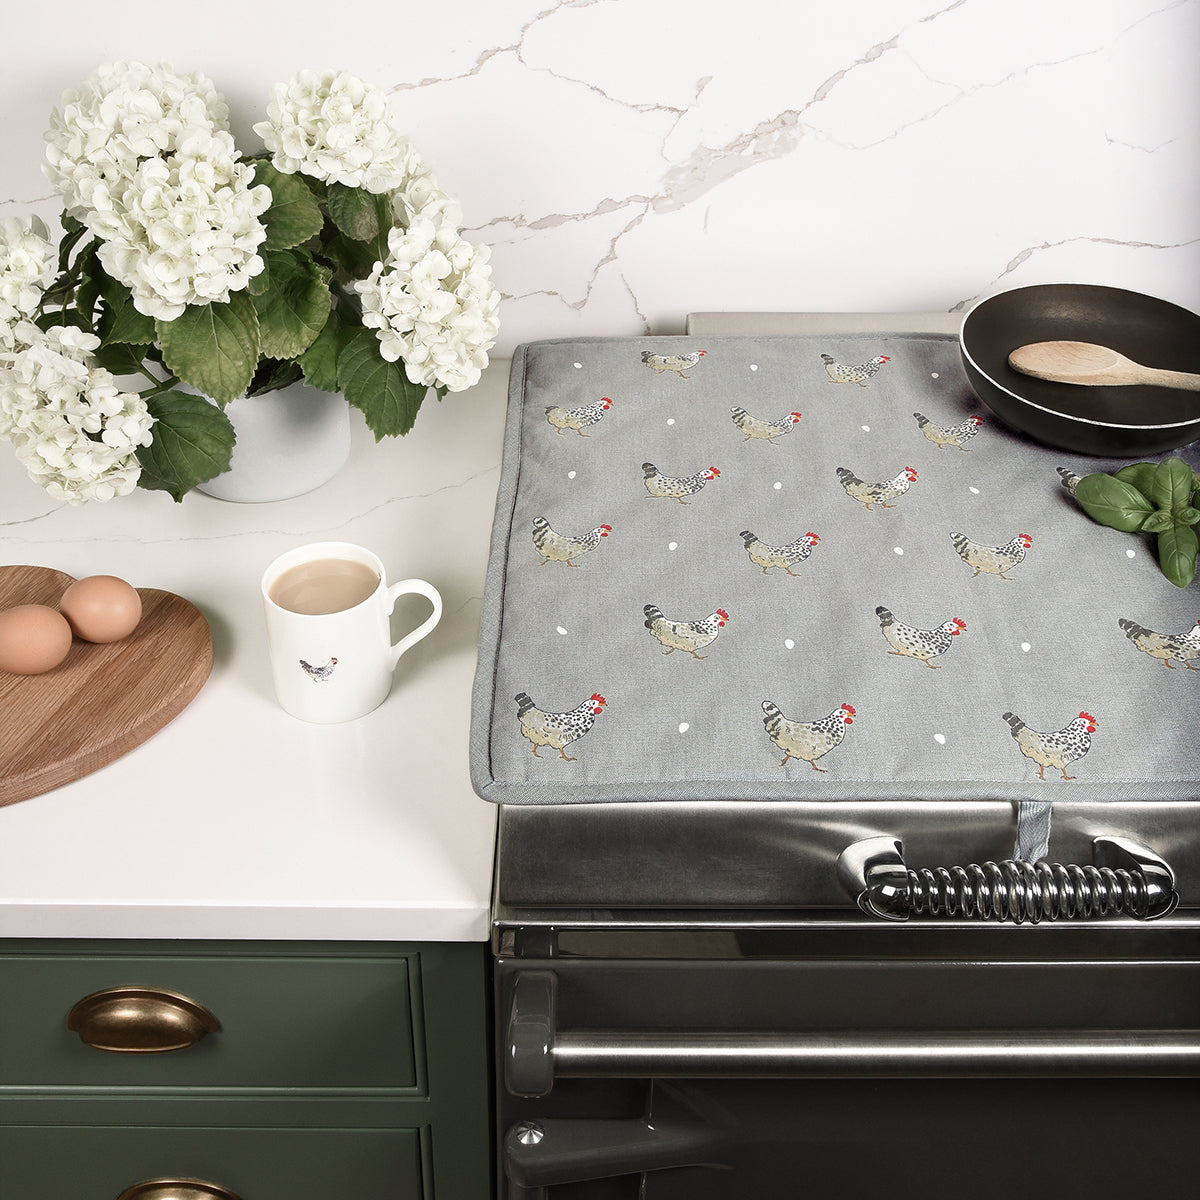 Chicken Rectangular Hob Cover